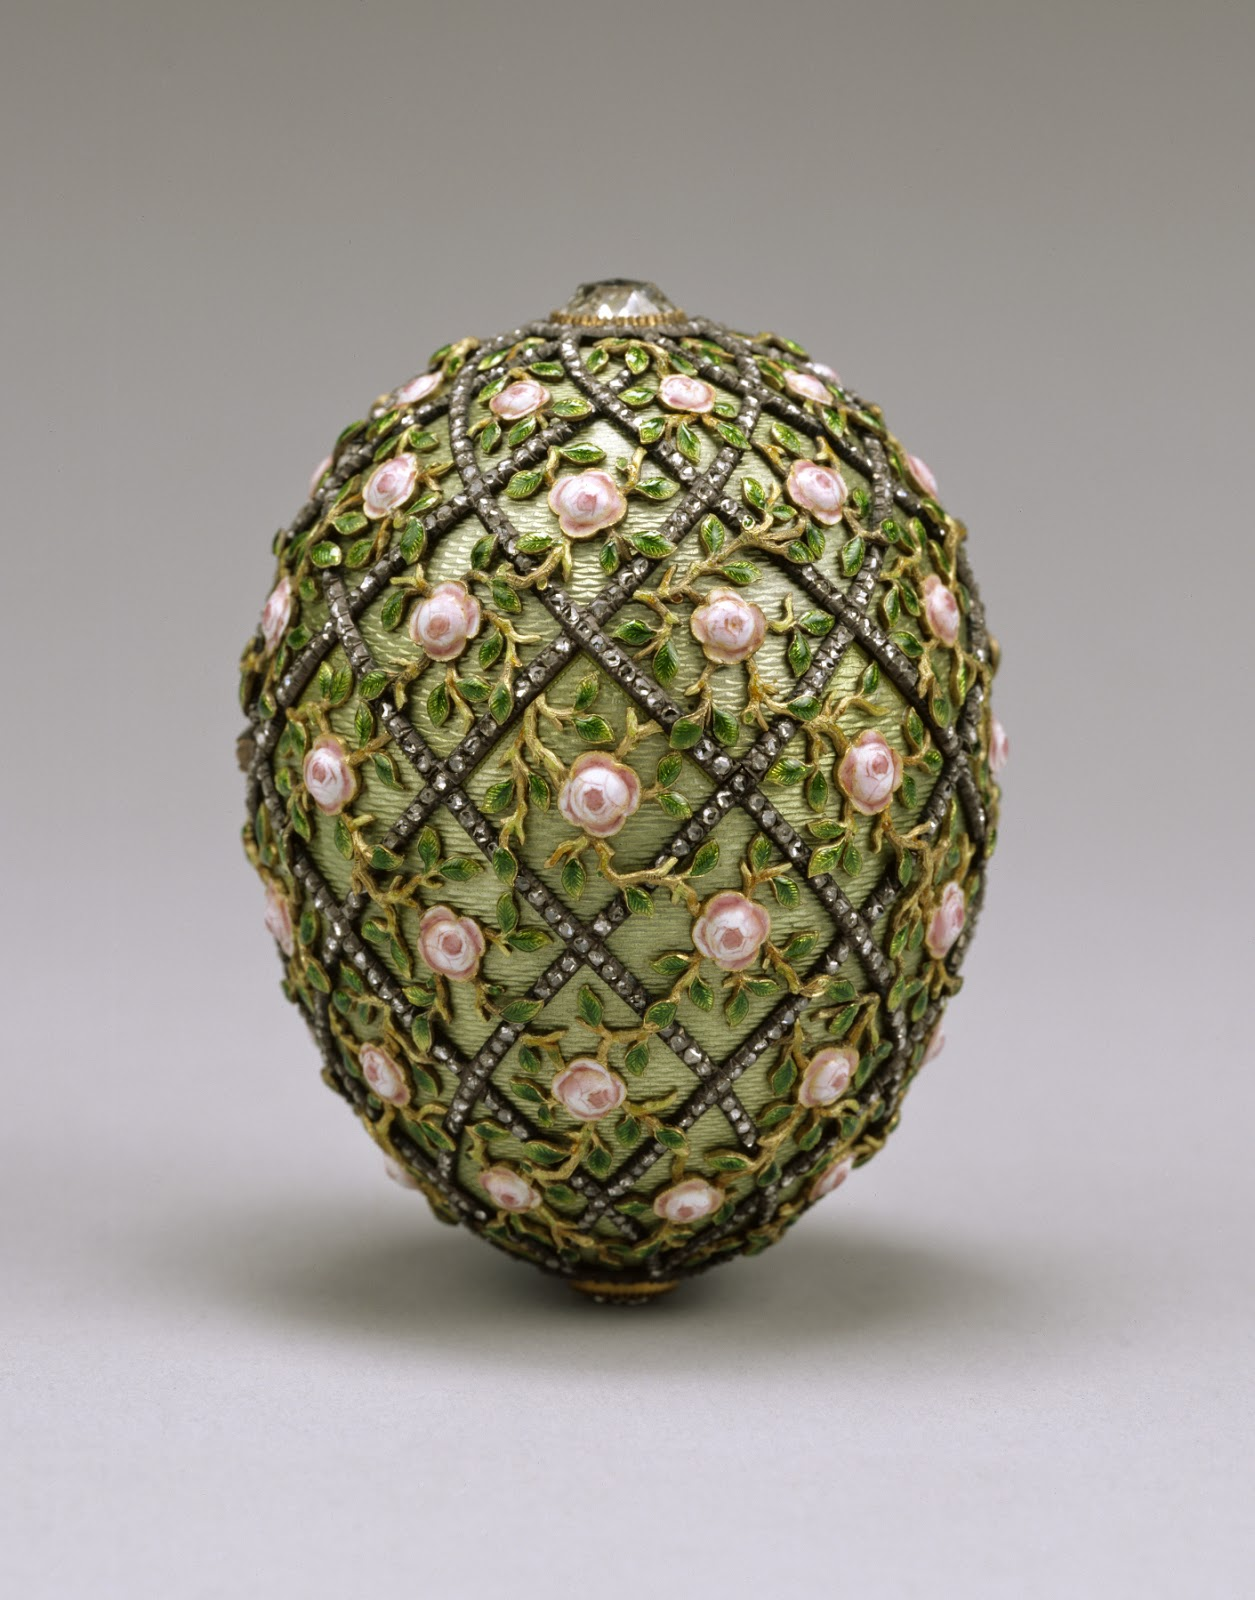 House_of_Fabergé_-_Rose_Trellis_Egg_-_Walters_44501